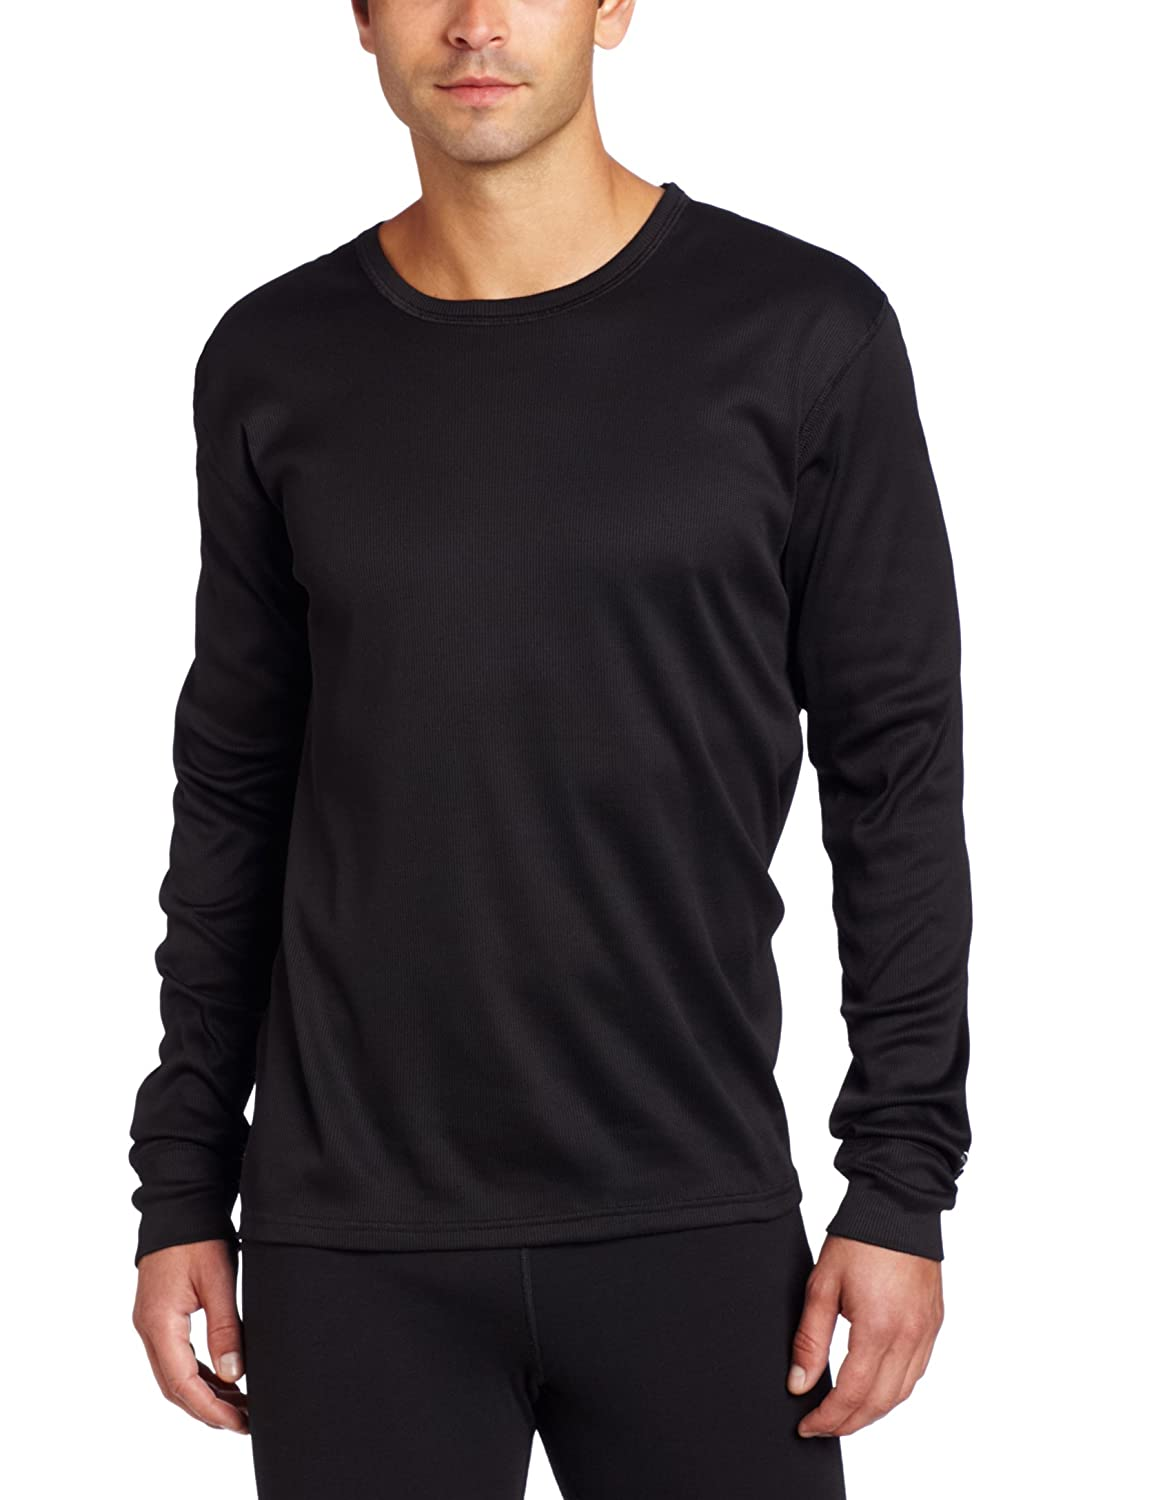 04e96df9091f Duofold Men s Brushed Back Crew Neck Thermal Top at Amazon Men s Clothing  store  Base Layer Tops